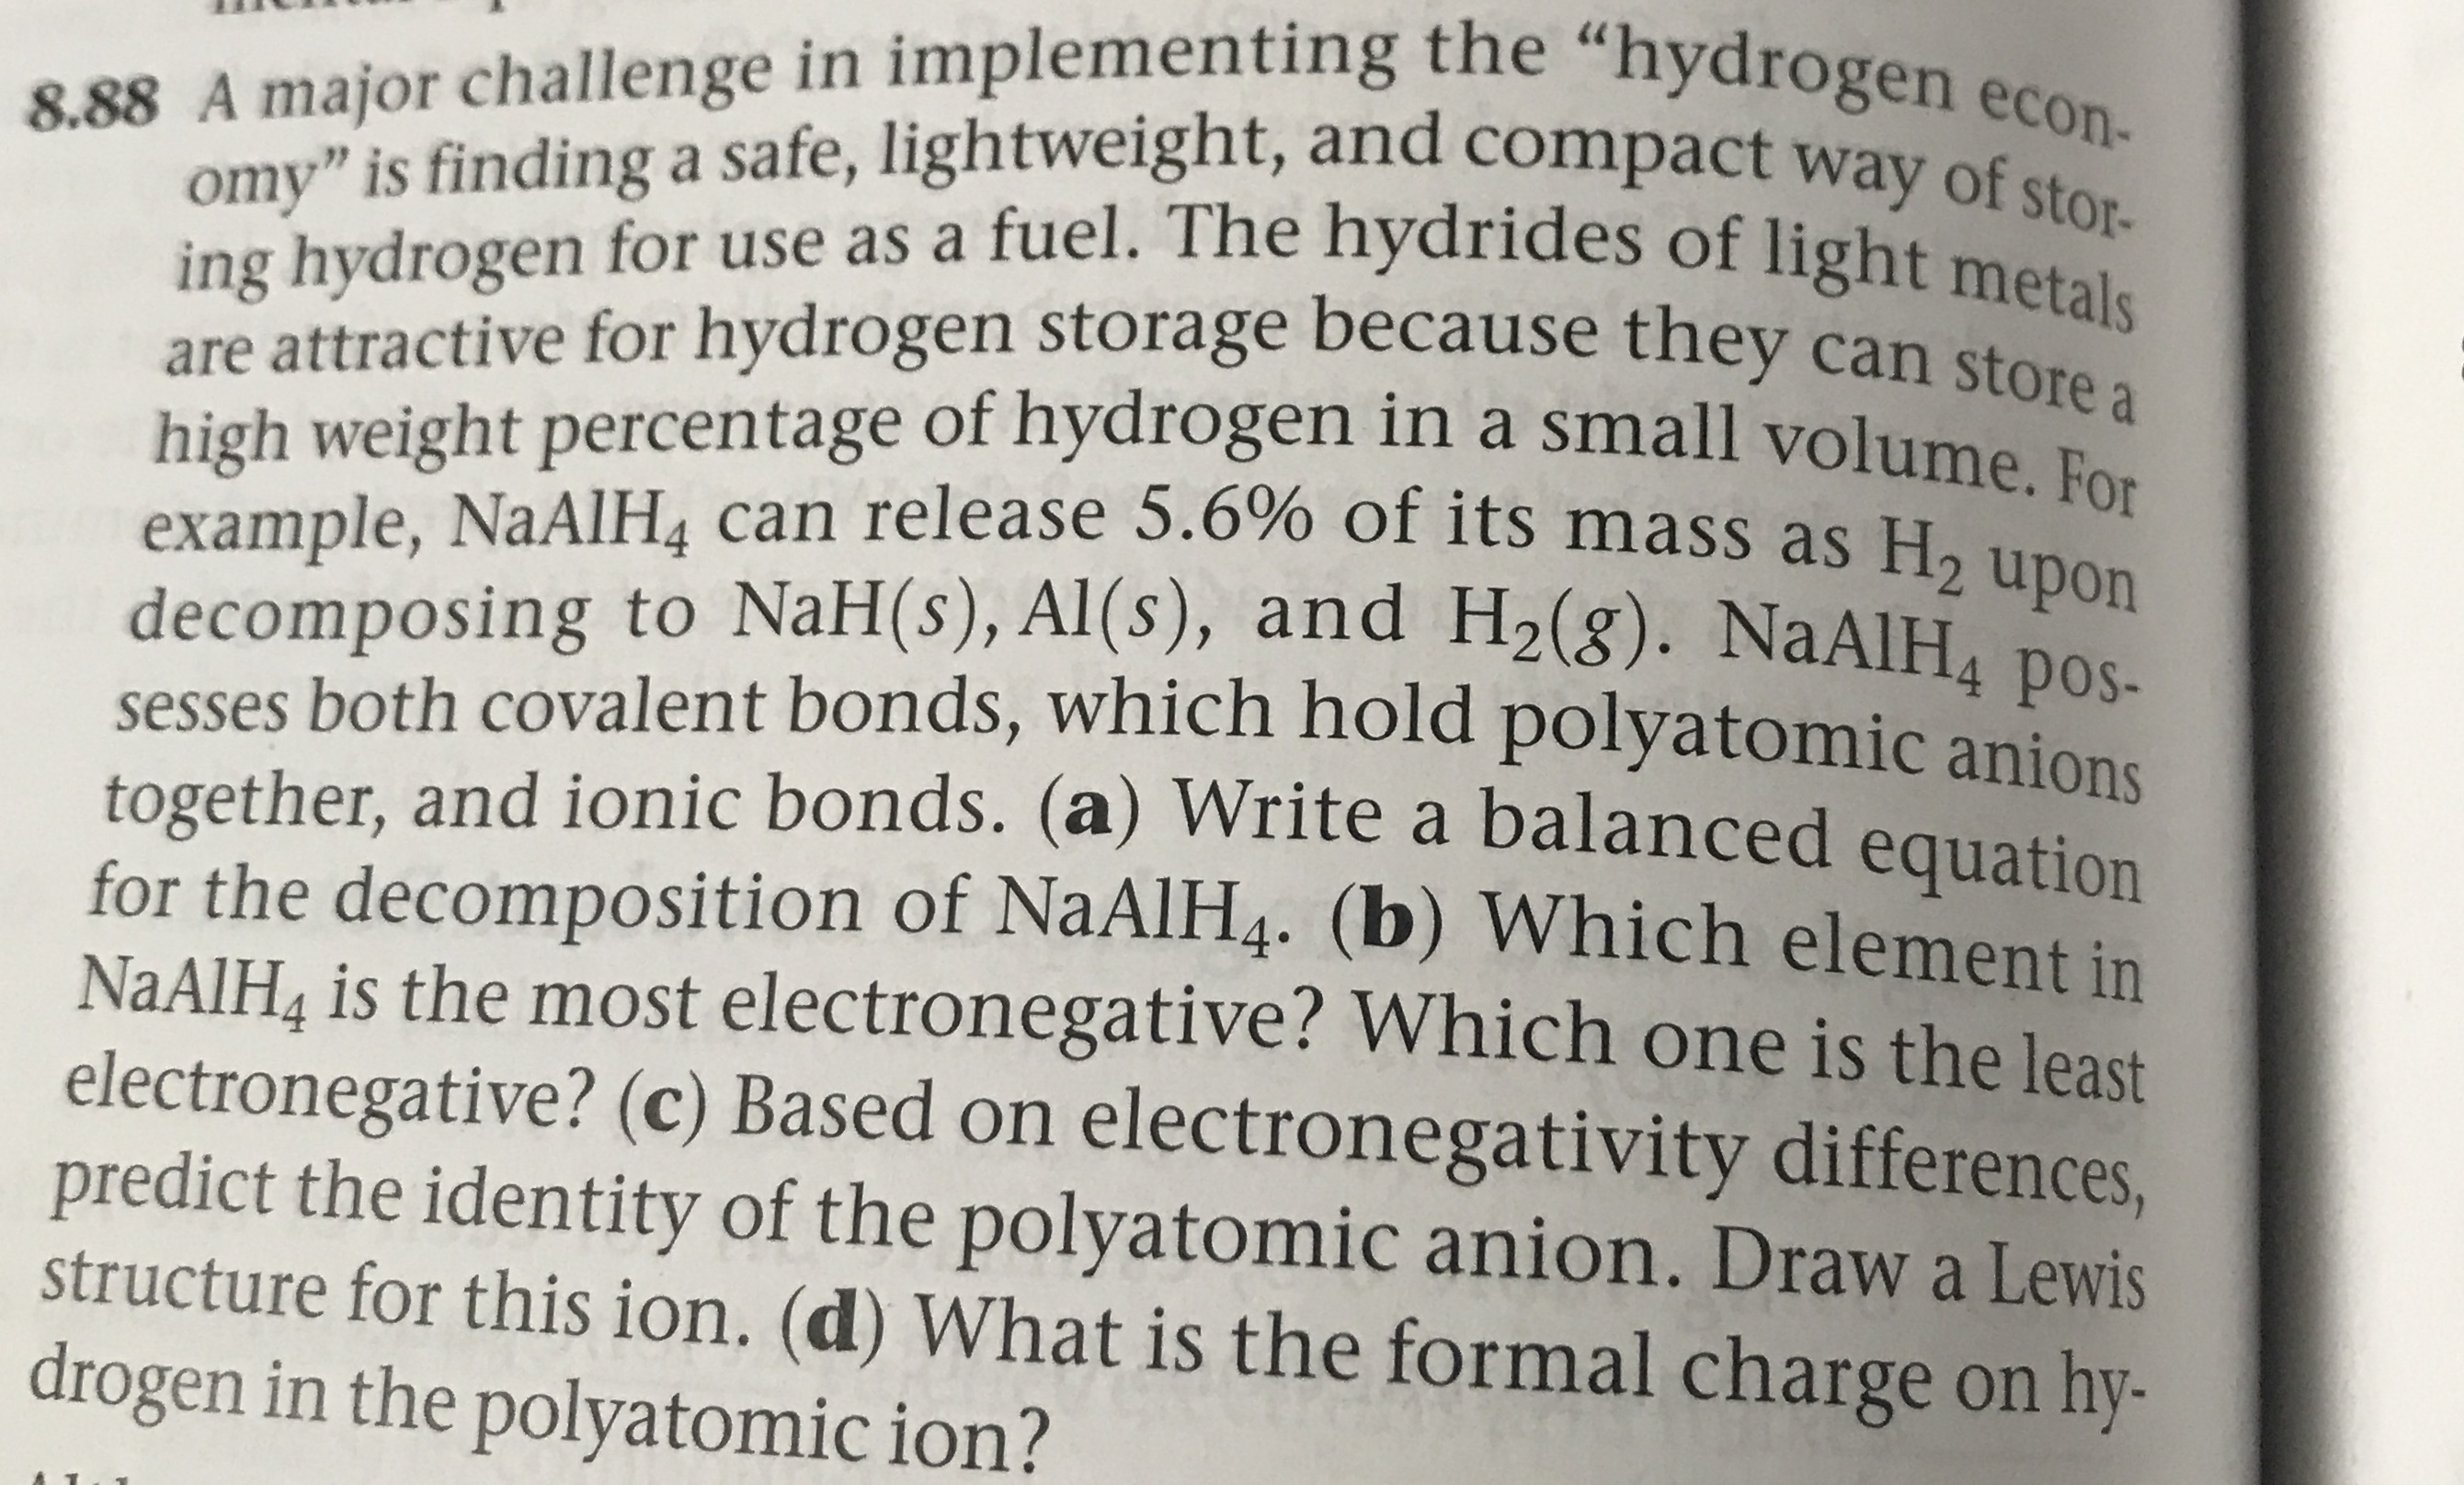 """8.88 A major challenge in implementing the """"hydrogen econ- omy"""" is finding a safe, lightweight, and compact way of stor- ing hydrogen for use as a fuel. The hydrides of light metals are attractive for hydrogen storage because they can store a high weight percentage of hydrogen in a small volume example, NaAlH4 can release 5.6% of its mass as H2 upon decomposing to NaH(s), Al(s), and H2(g). NaAlH4 pos- sesses both covalent bonds, which hold polyatomic anions together, and ionic bonds. (a) Write a balanced equation for the decomposition of NaAlH4. (b) Which element in NAAIH& is the most electronegative? Which one is the least electronegative? (c) Based on electronegativity differences, predict the identity of the polyatomic anion. Draw a Lewis structure for this ion. (d) What is the formal charge on hy- drogen in the polyatomic ion?"""